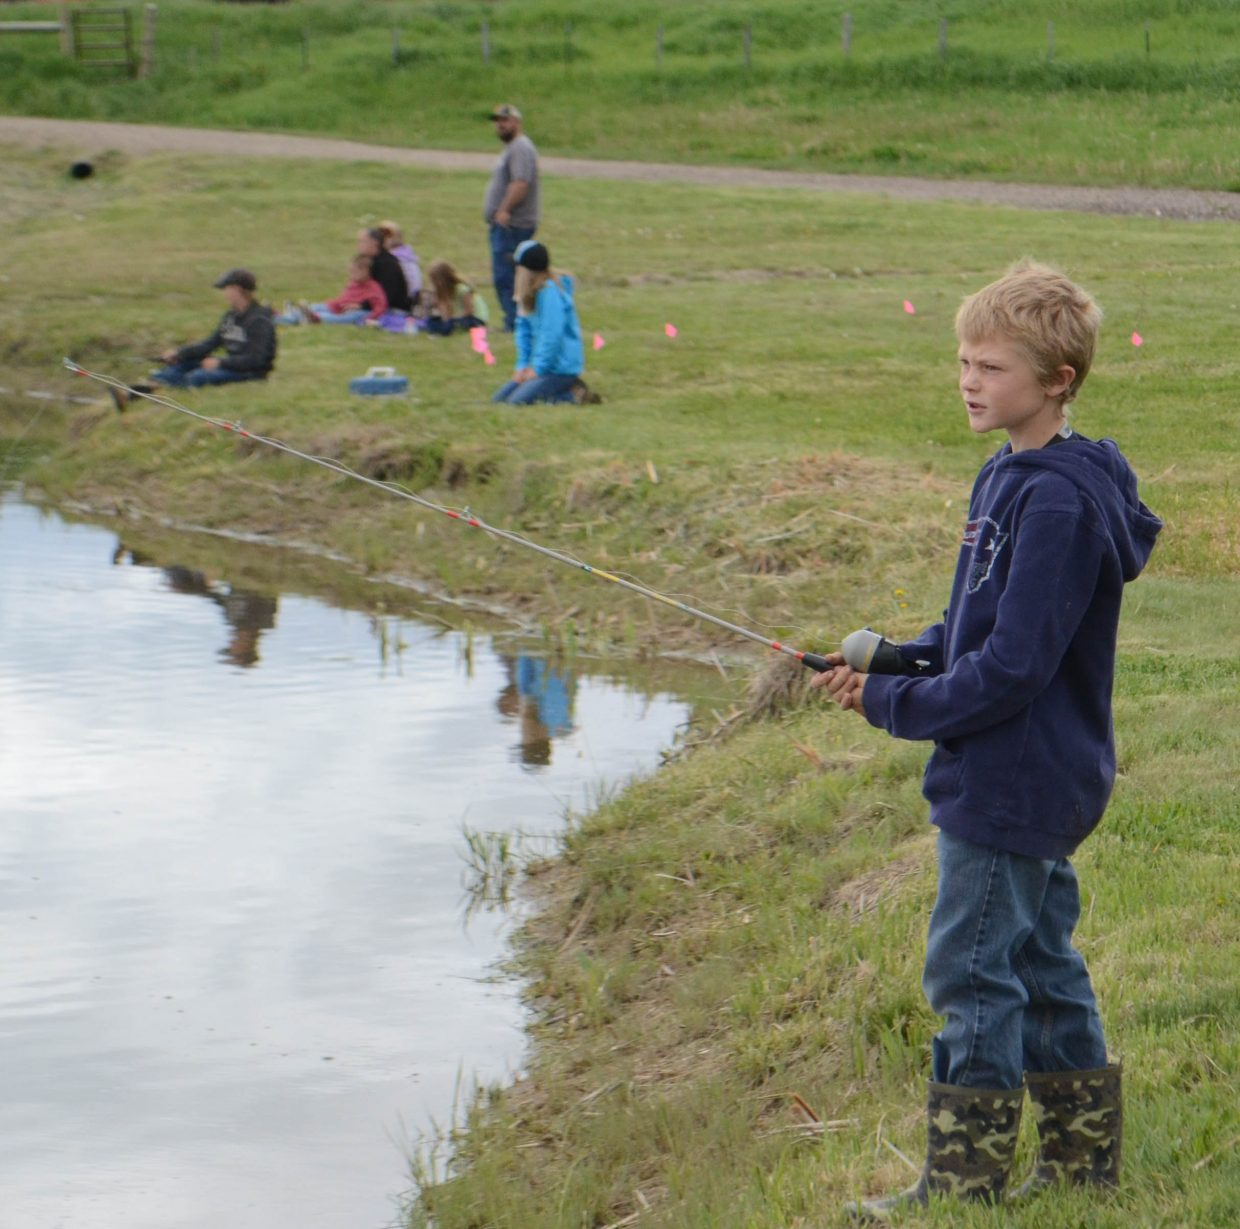 Cale Howard, of Hayden, casts his line during Saturday's Huck Finn Day Fishing Derby at Hayden's Dry Creek Park.